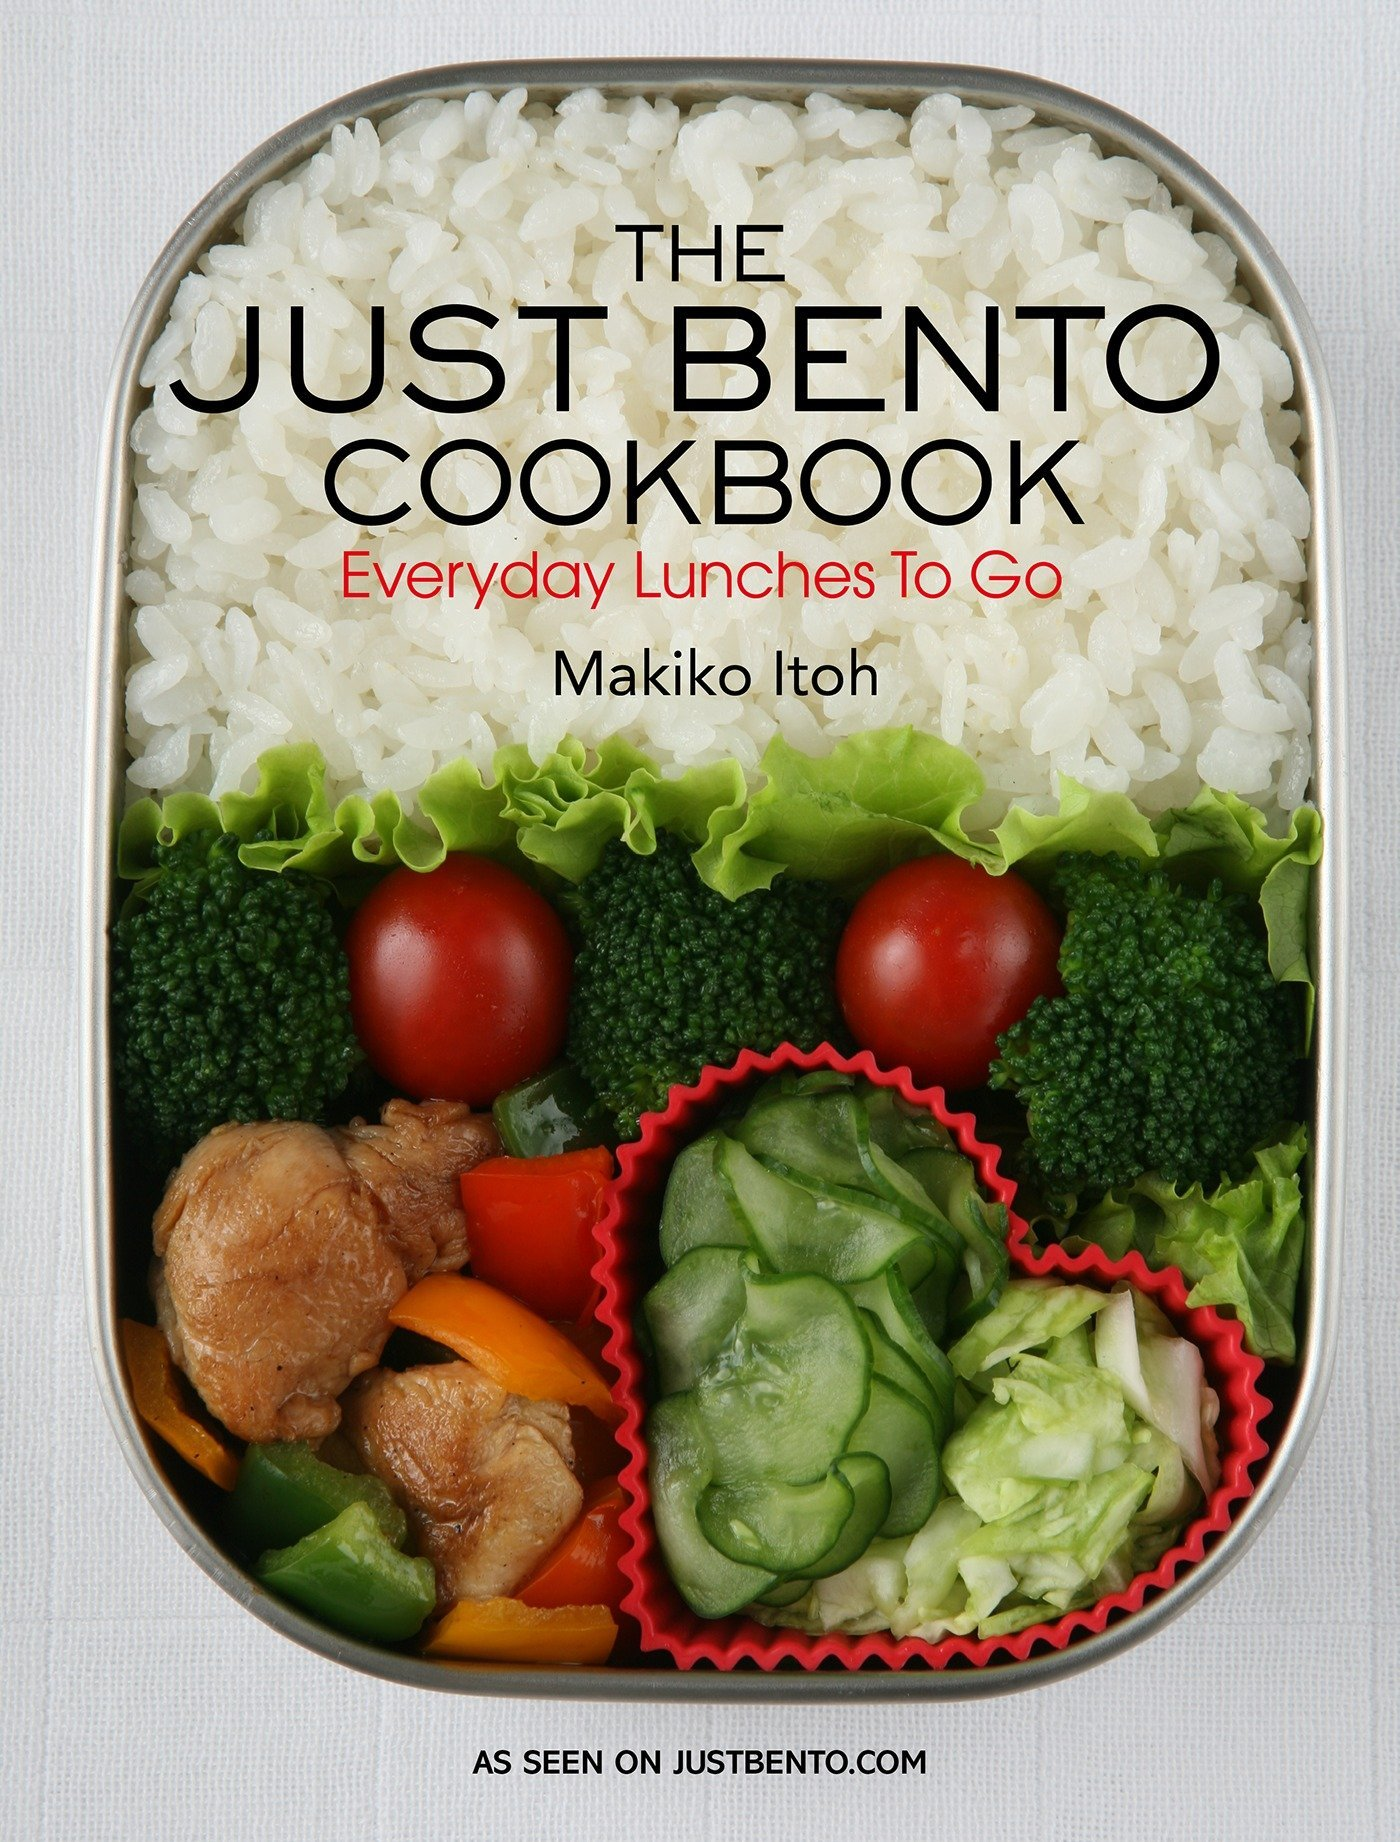 Just Bento Cookbook Everyday Lunches product image